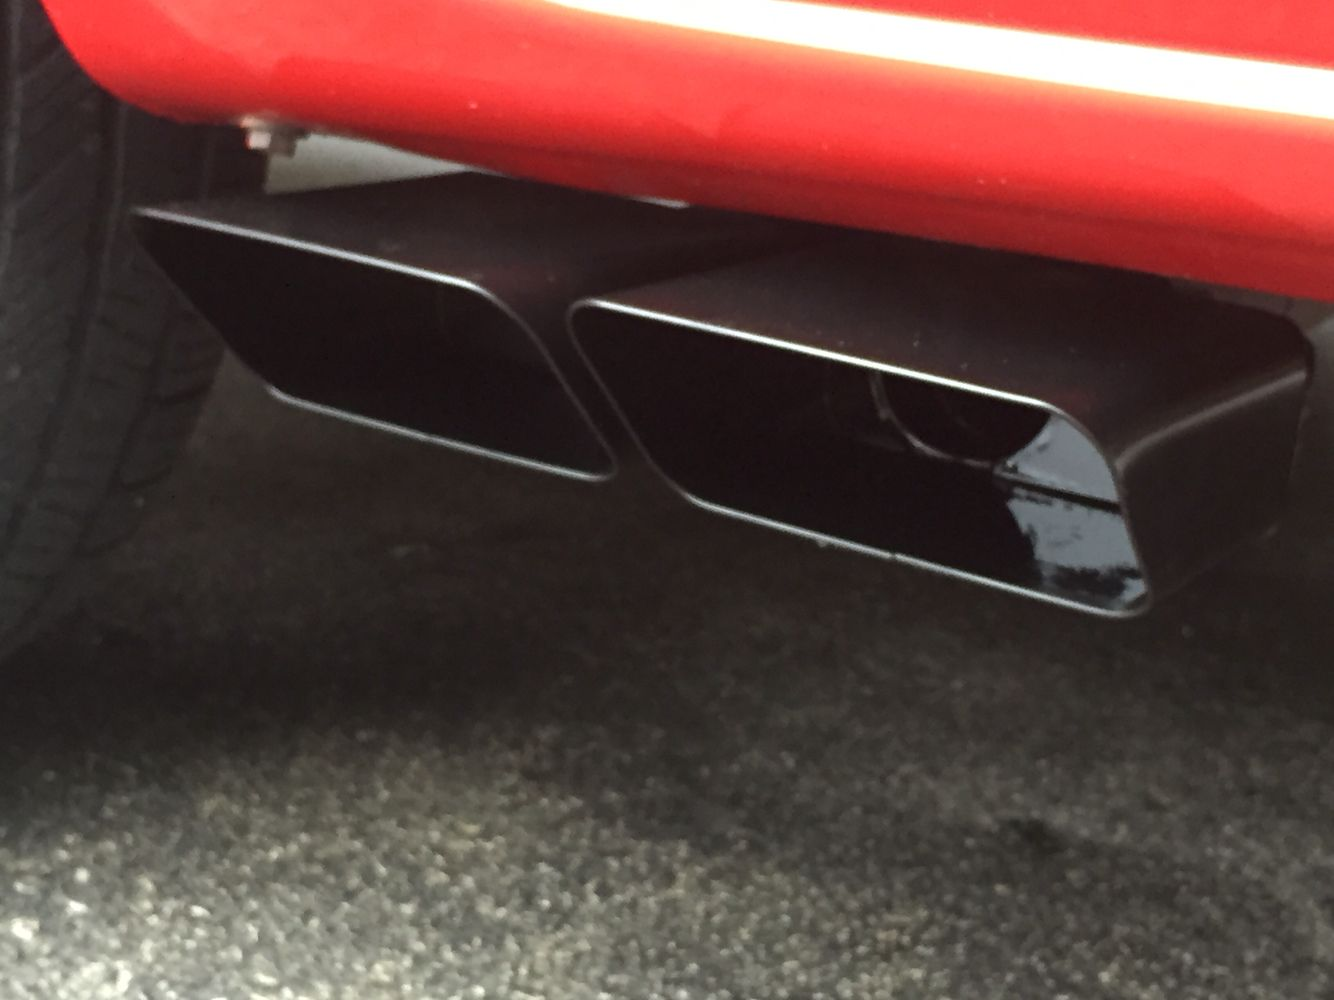 my gibson exhaust tips were losing the